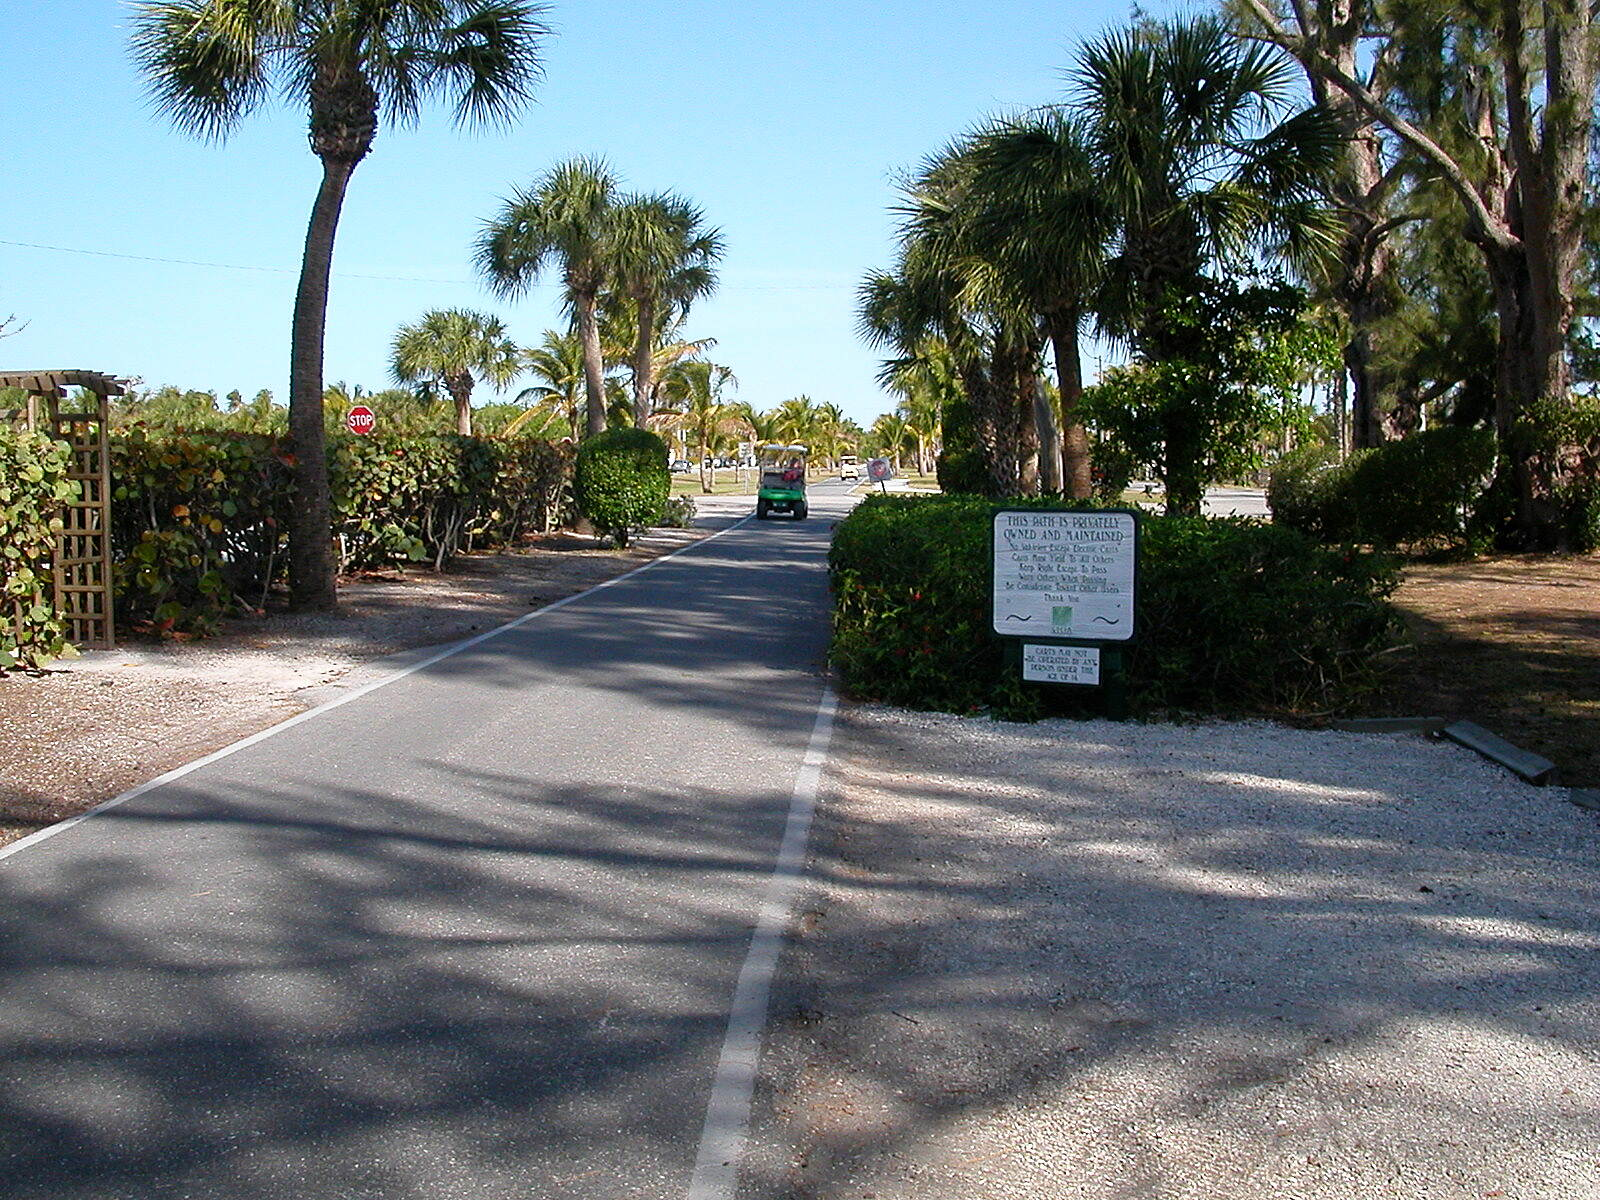 Boca Grande Bike Path Along the Trail An unusual trial feature - sharing the trail with golf carts.